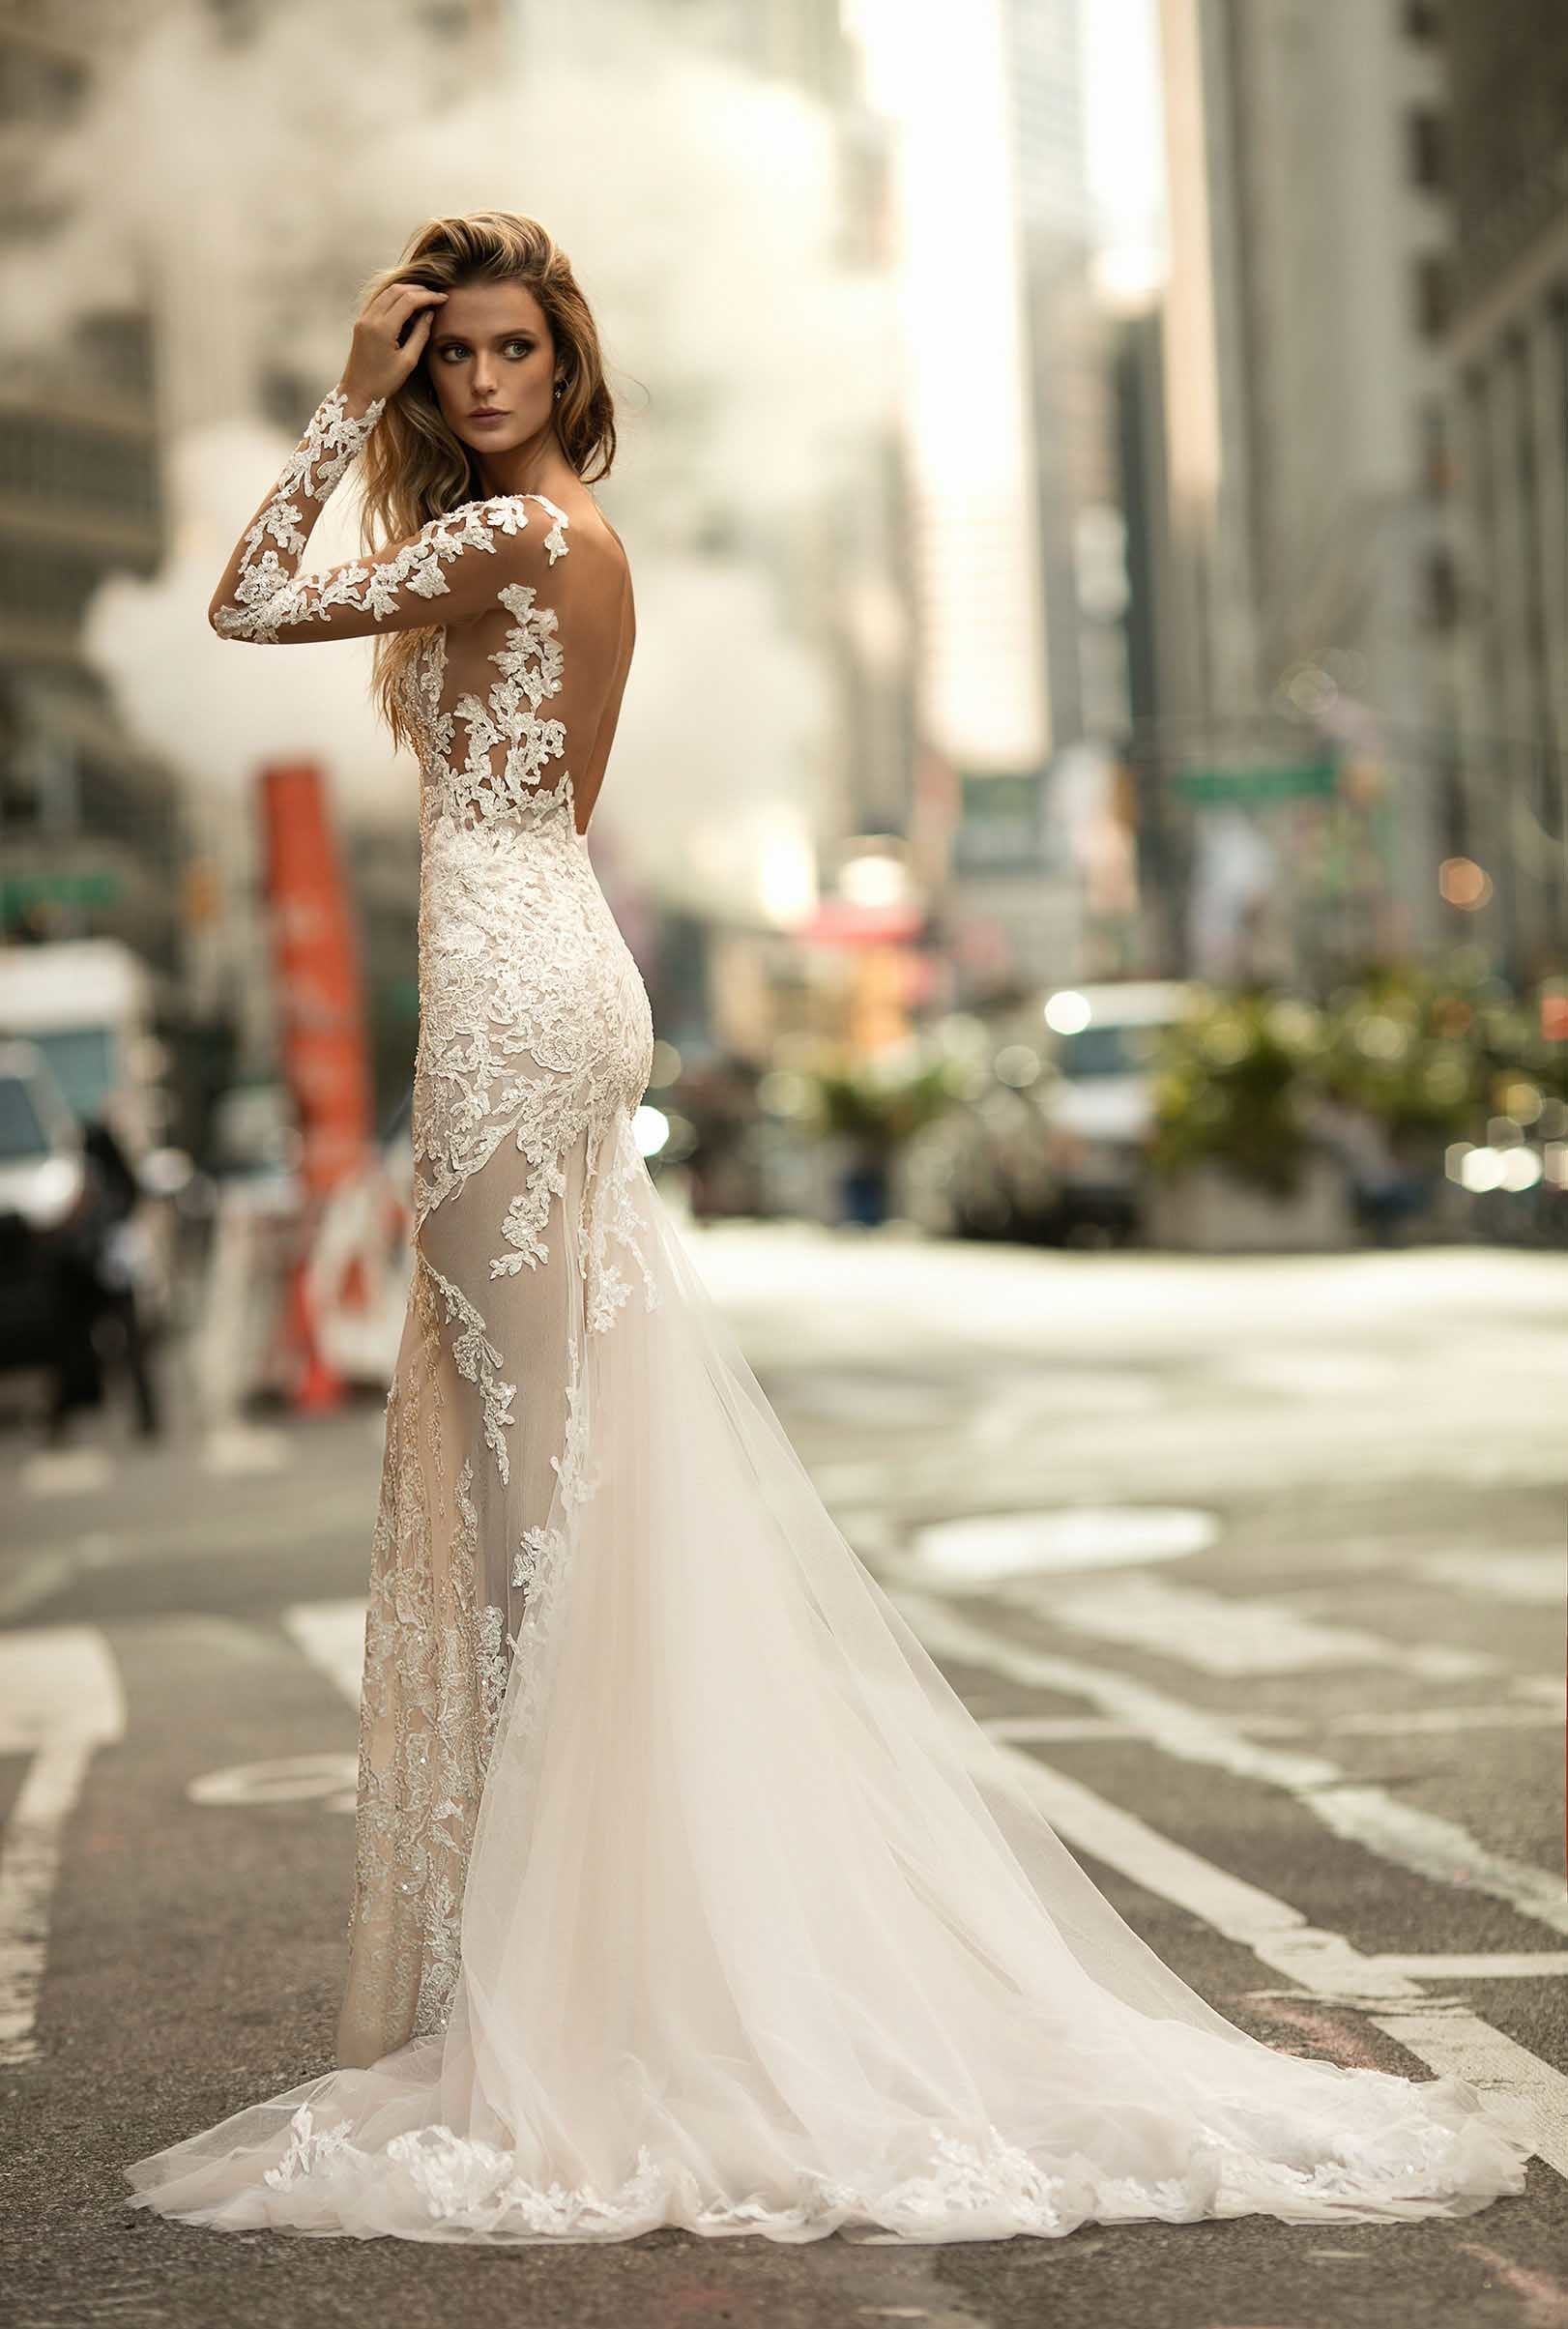 New Arrival 2017 Mermaid Full Lace Sleeve Wedding Dress